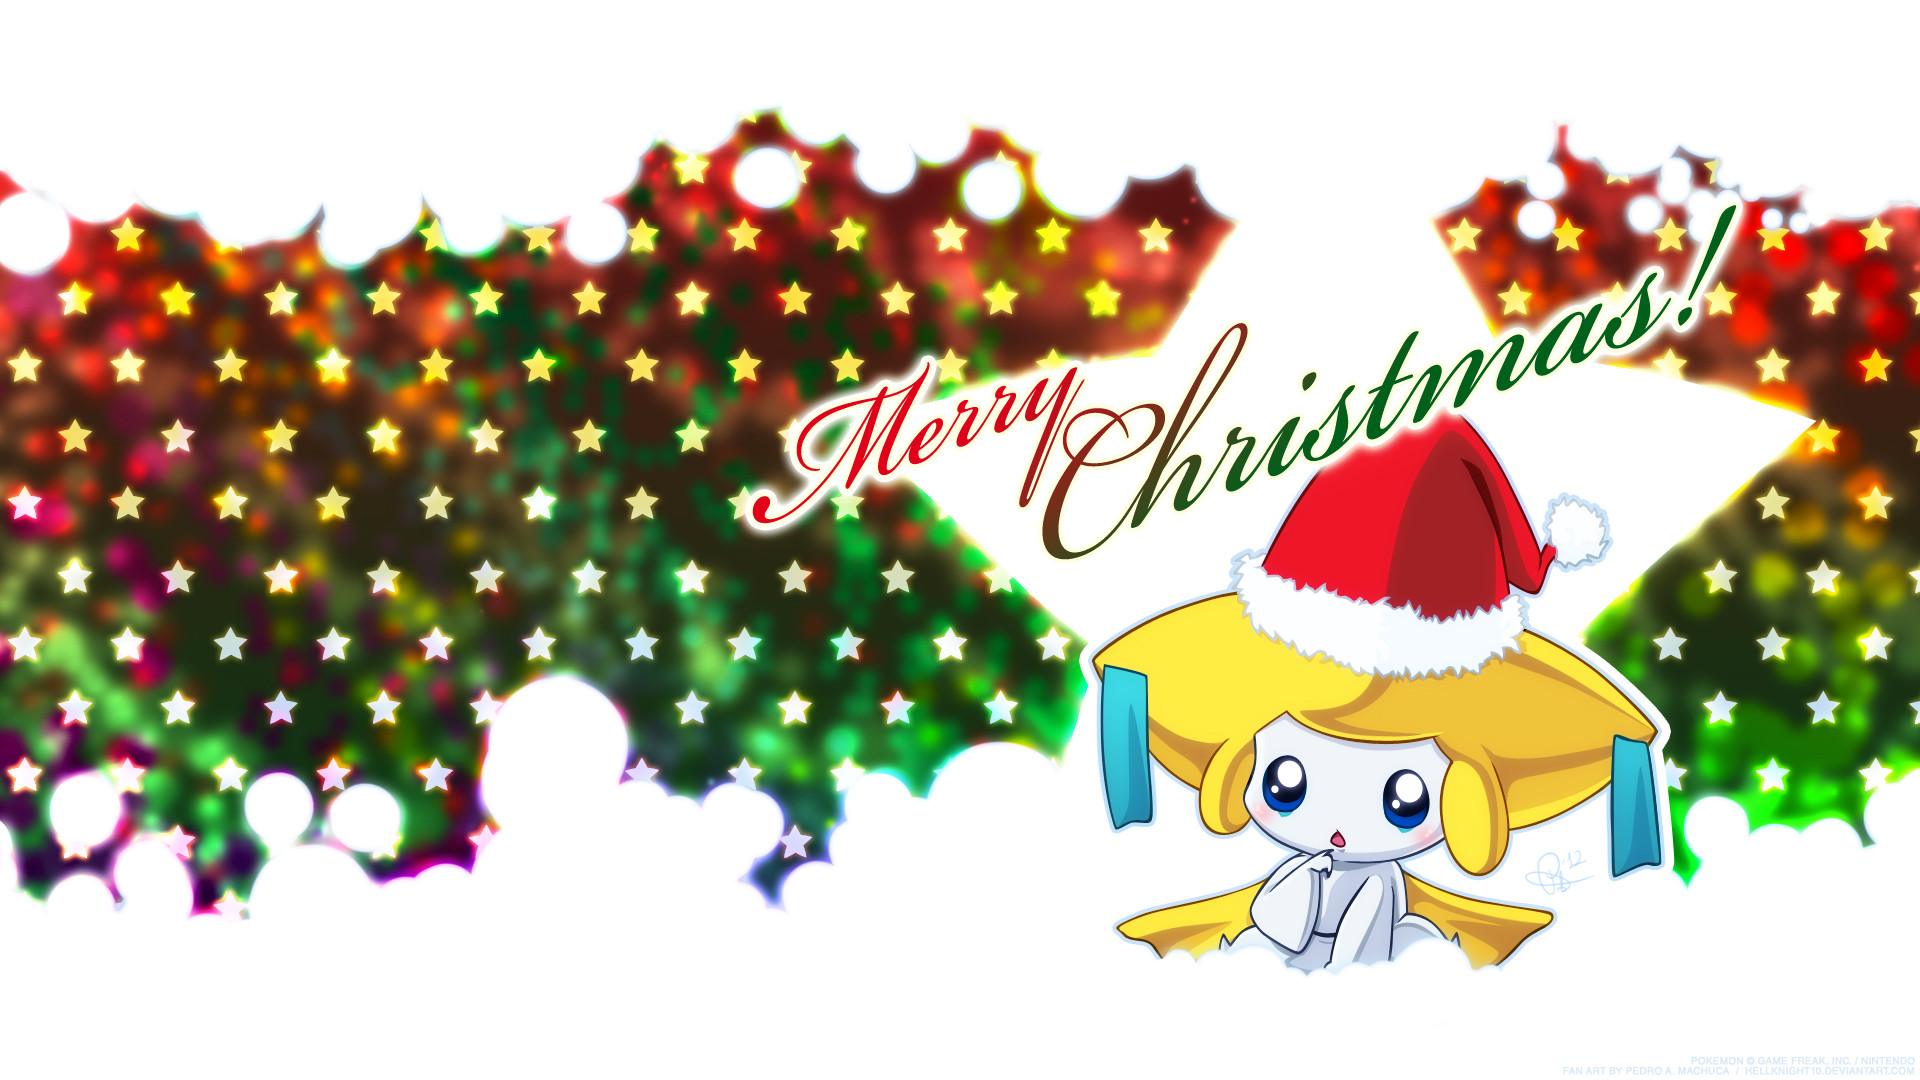 1920x1080 Christmas Jirachi Wallpaper by Hellknight10 Christmas Jirachi Wallpaper by  Hellknight10